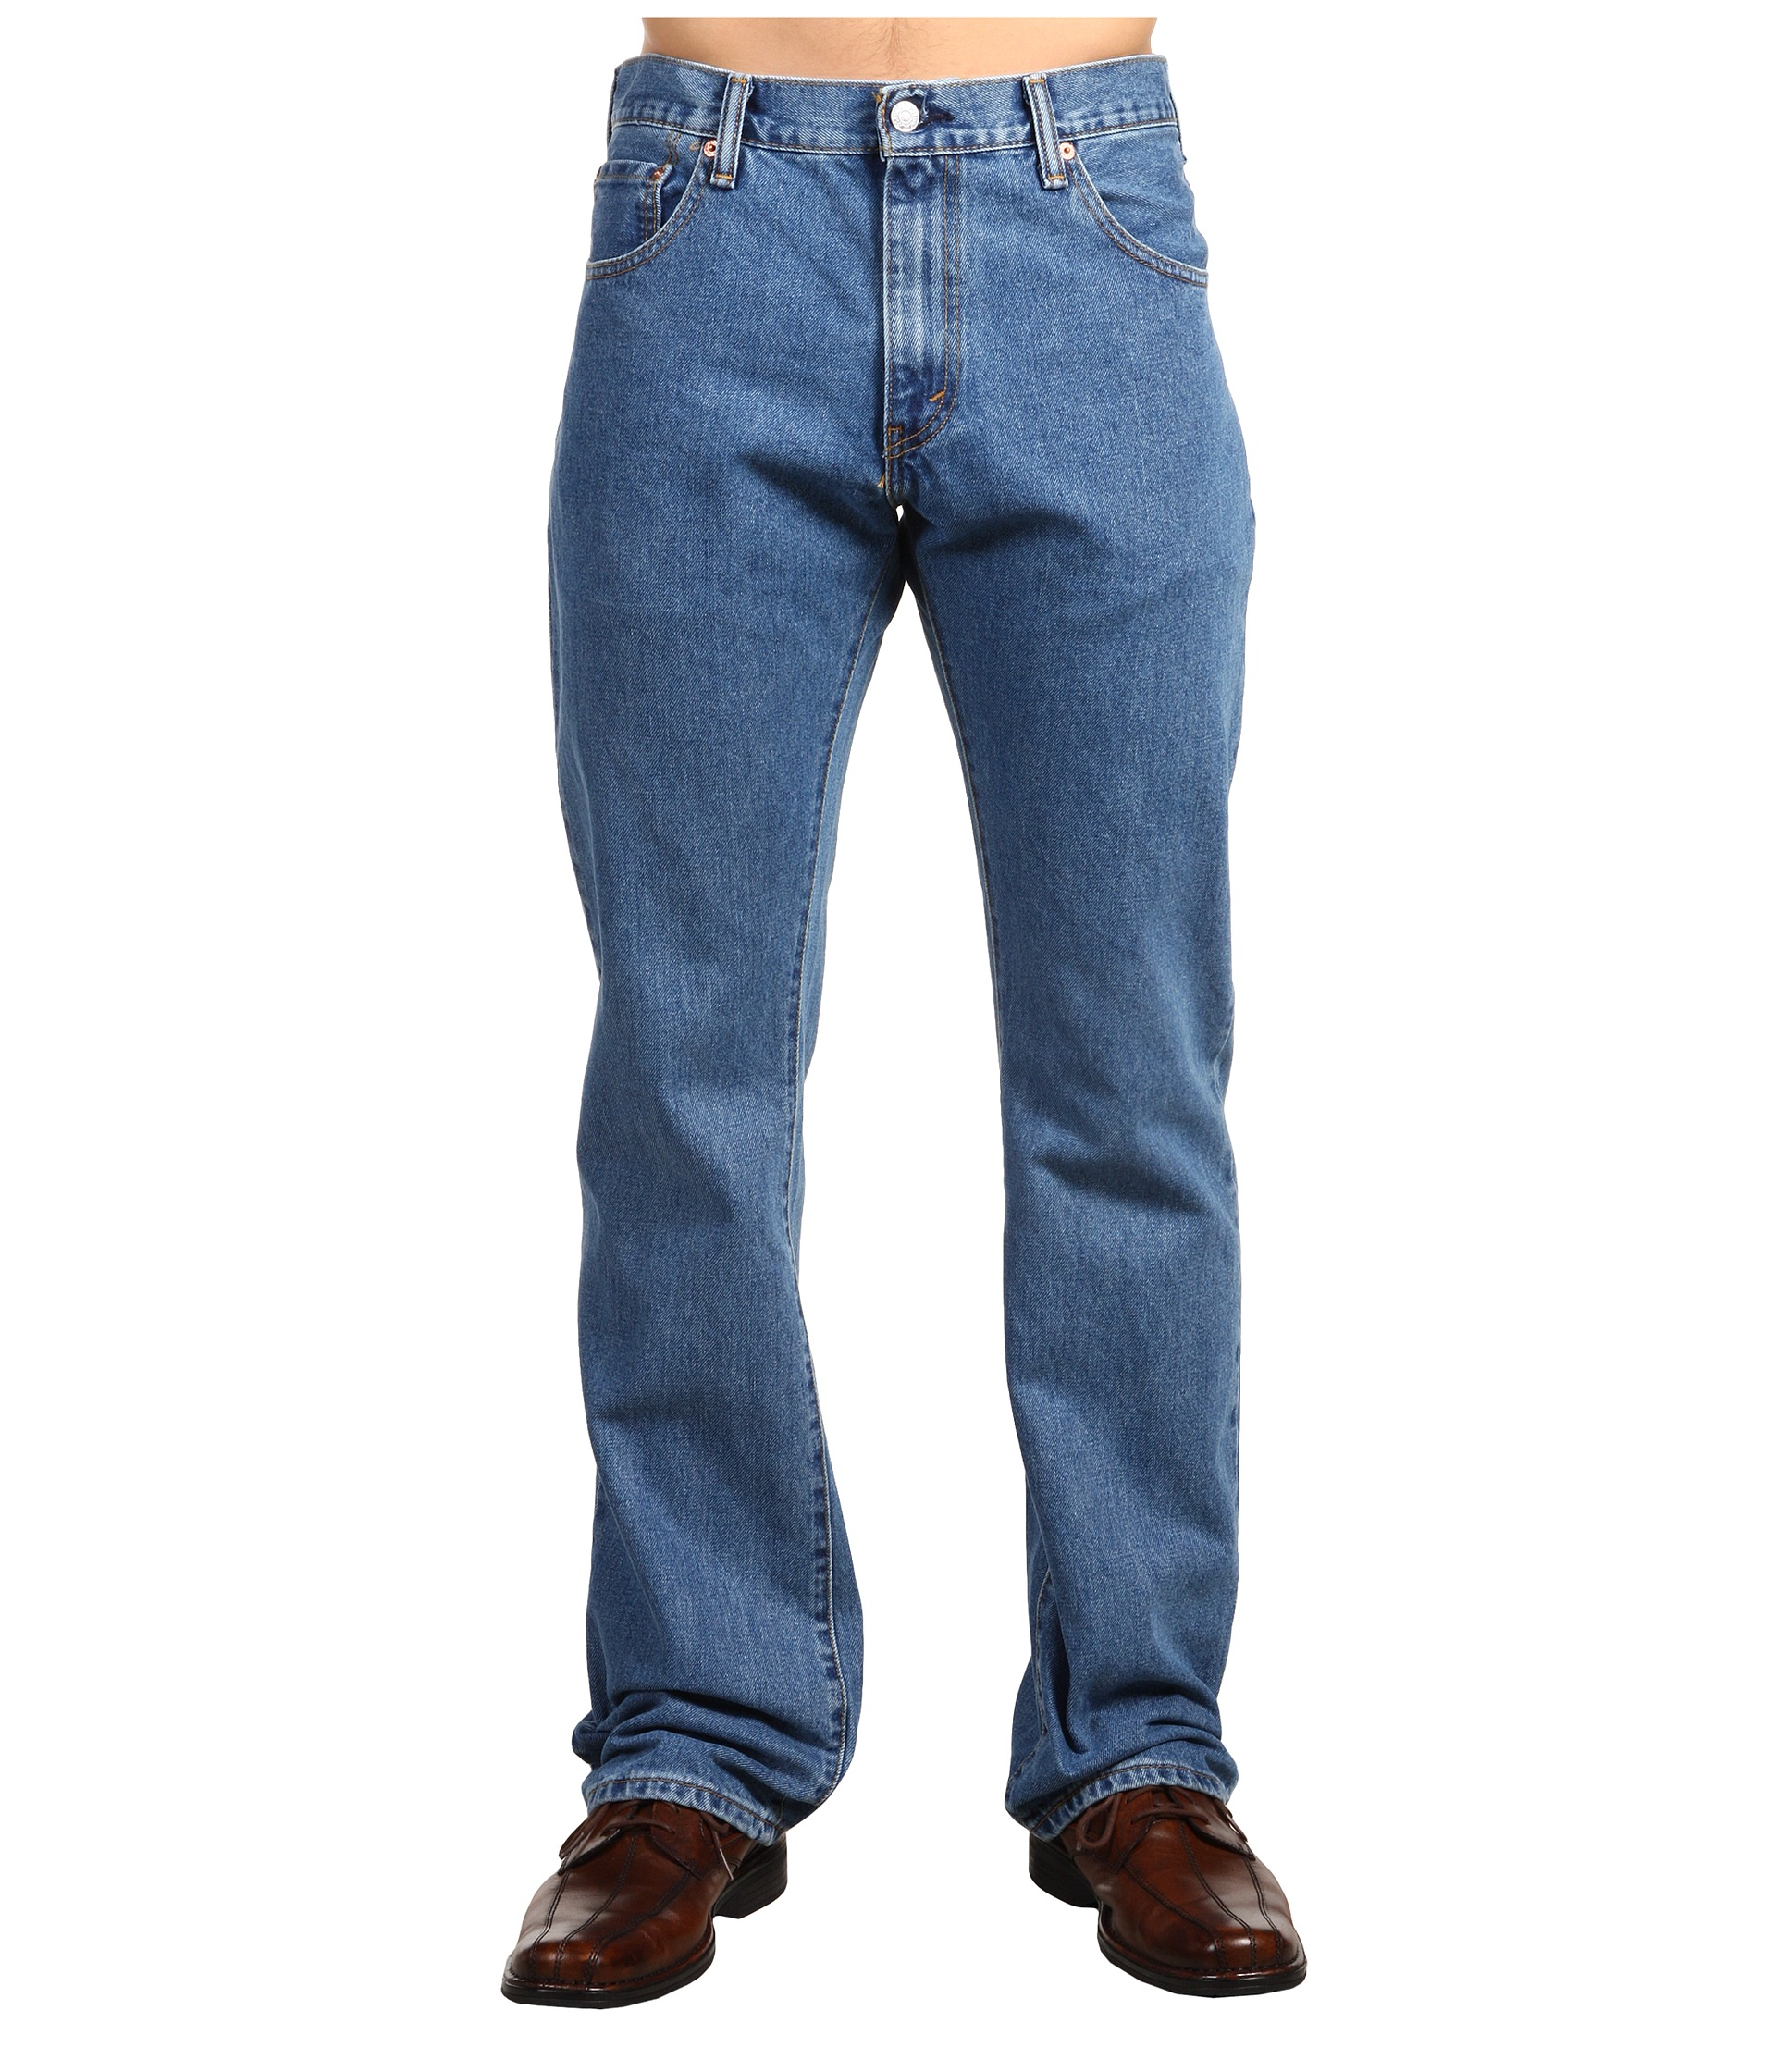 Stuccu: Best Deals on levis Up To 70% off.